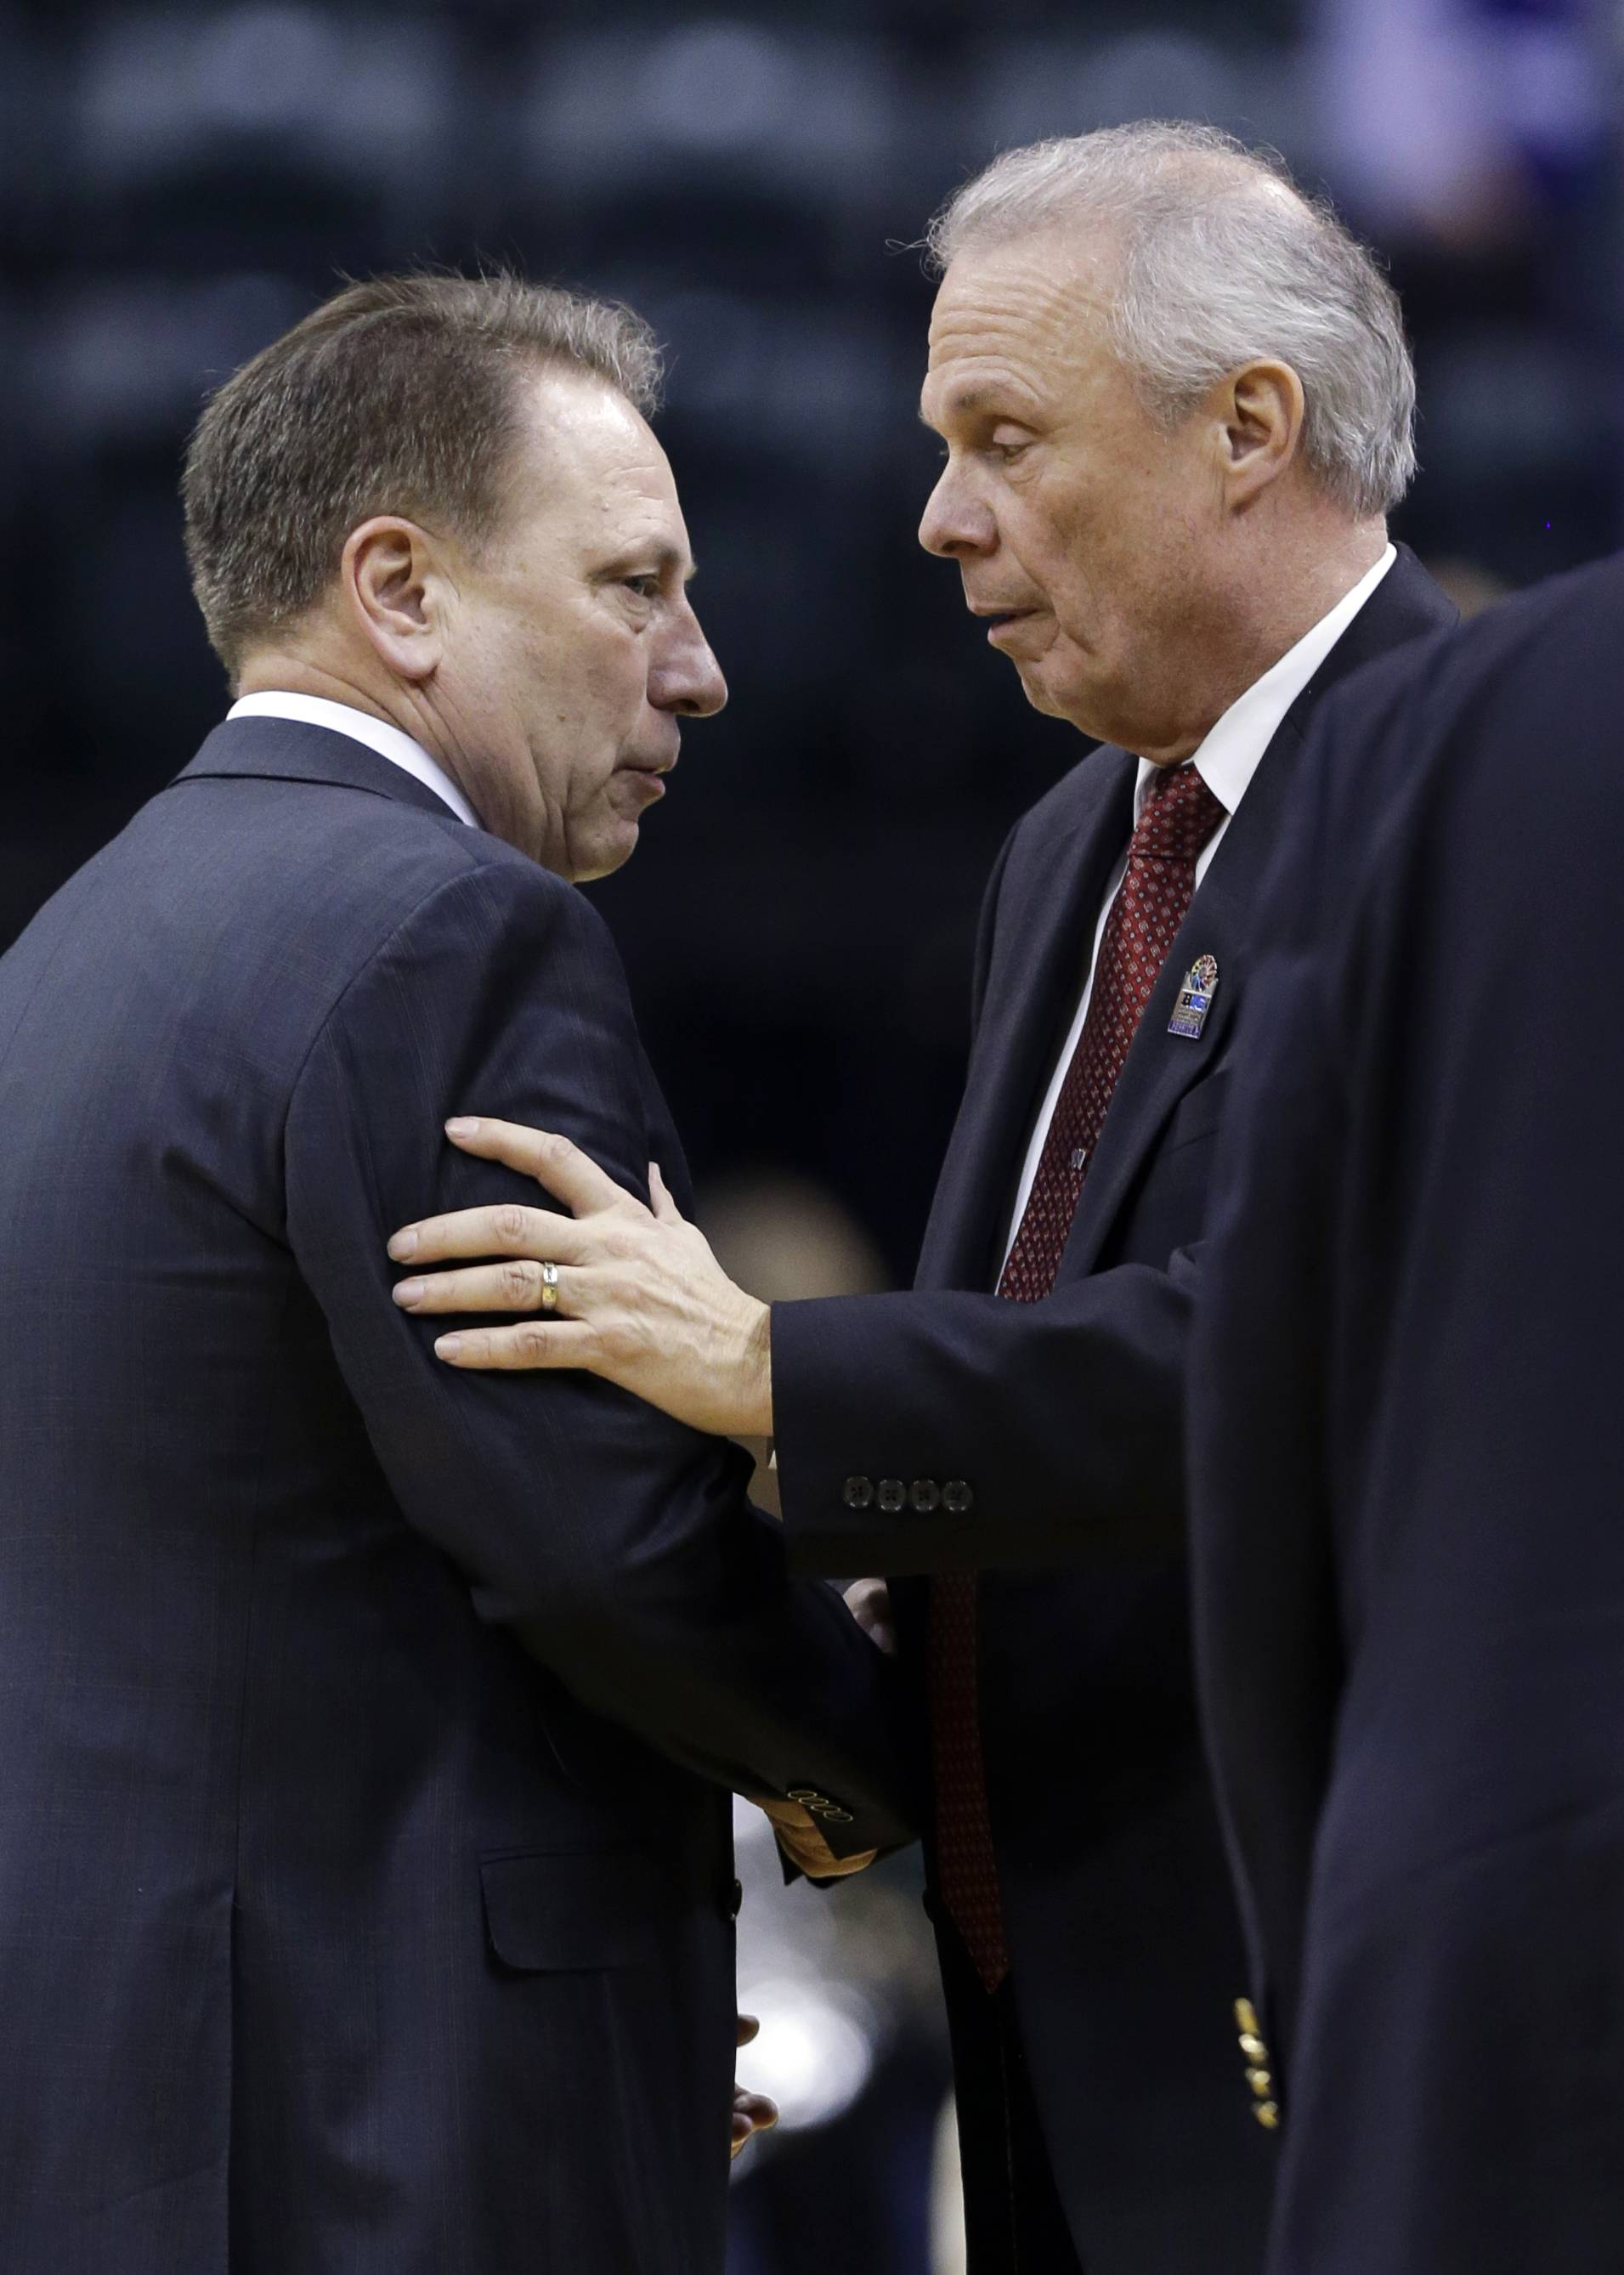 Coaches Tom Izzo, left, of Michigan State and Bo Ryan of Wisconsin are going to help Mike Imrem win a billion dollars, as the story goes.